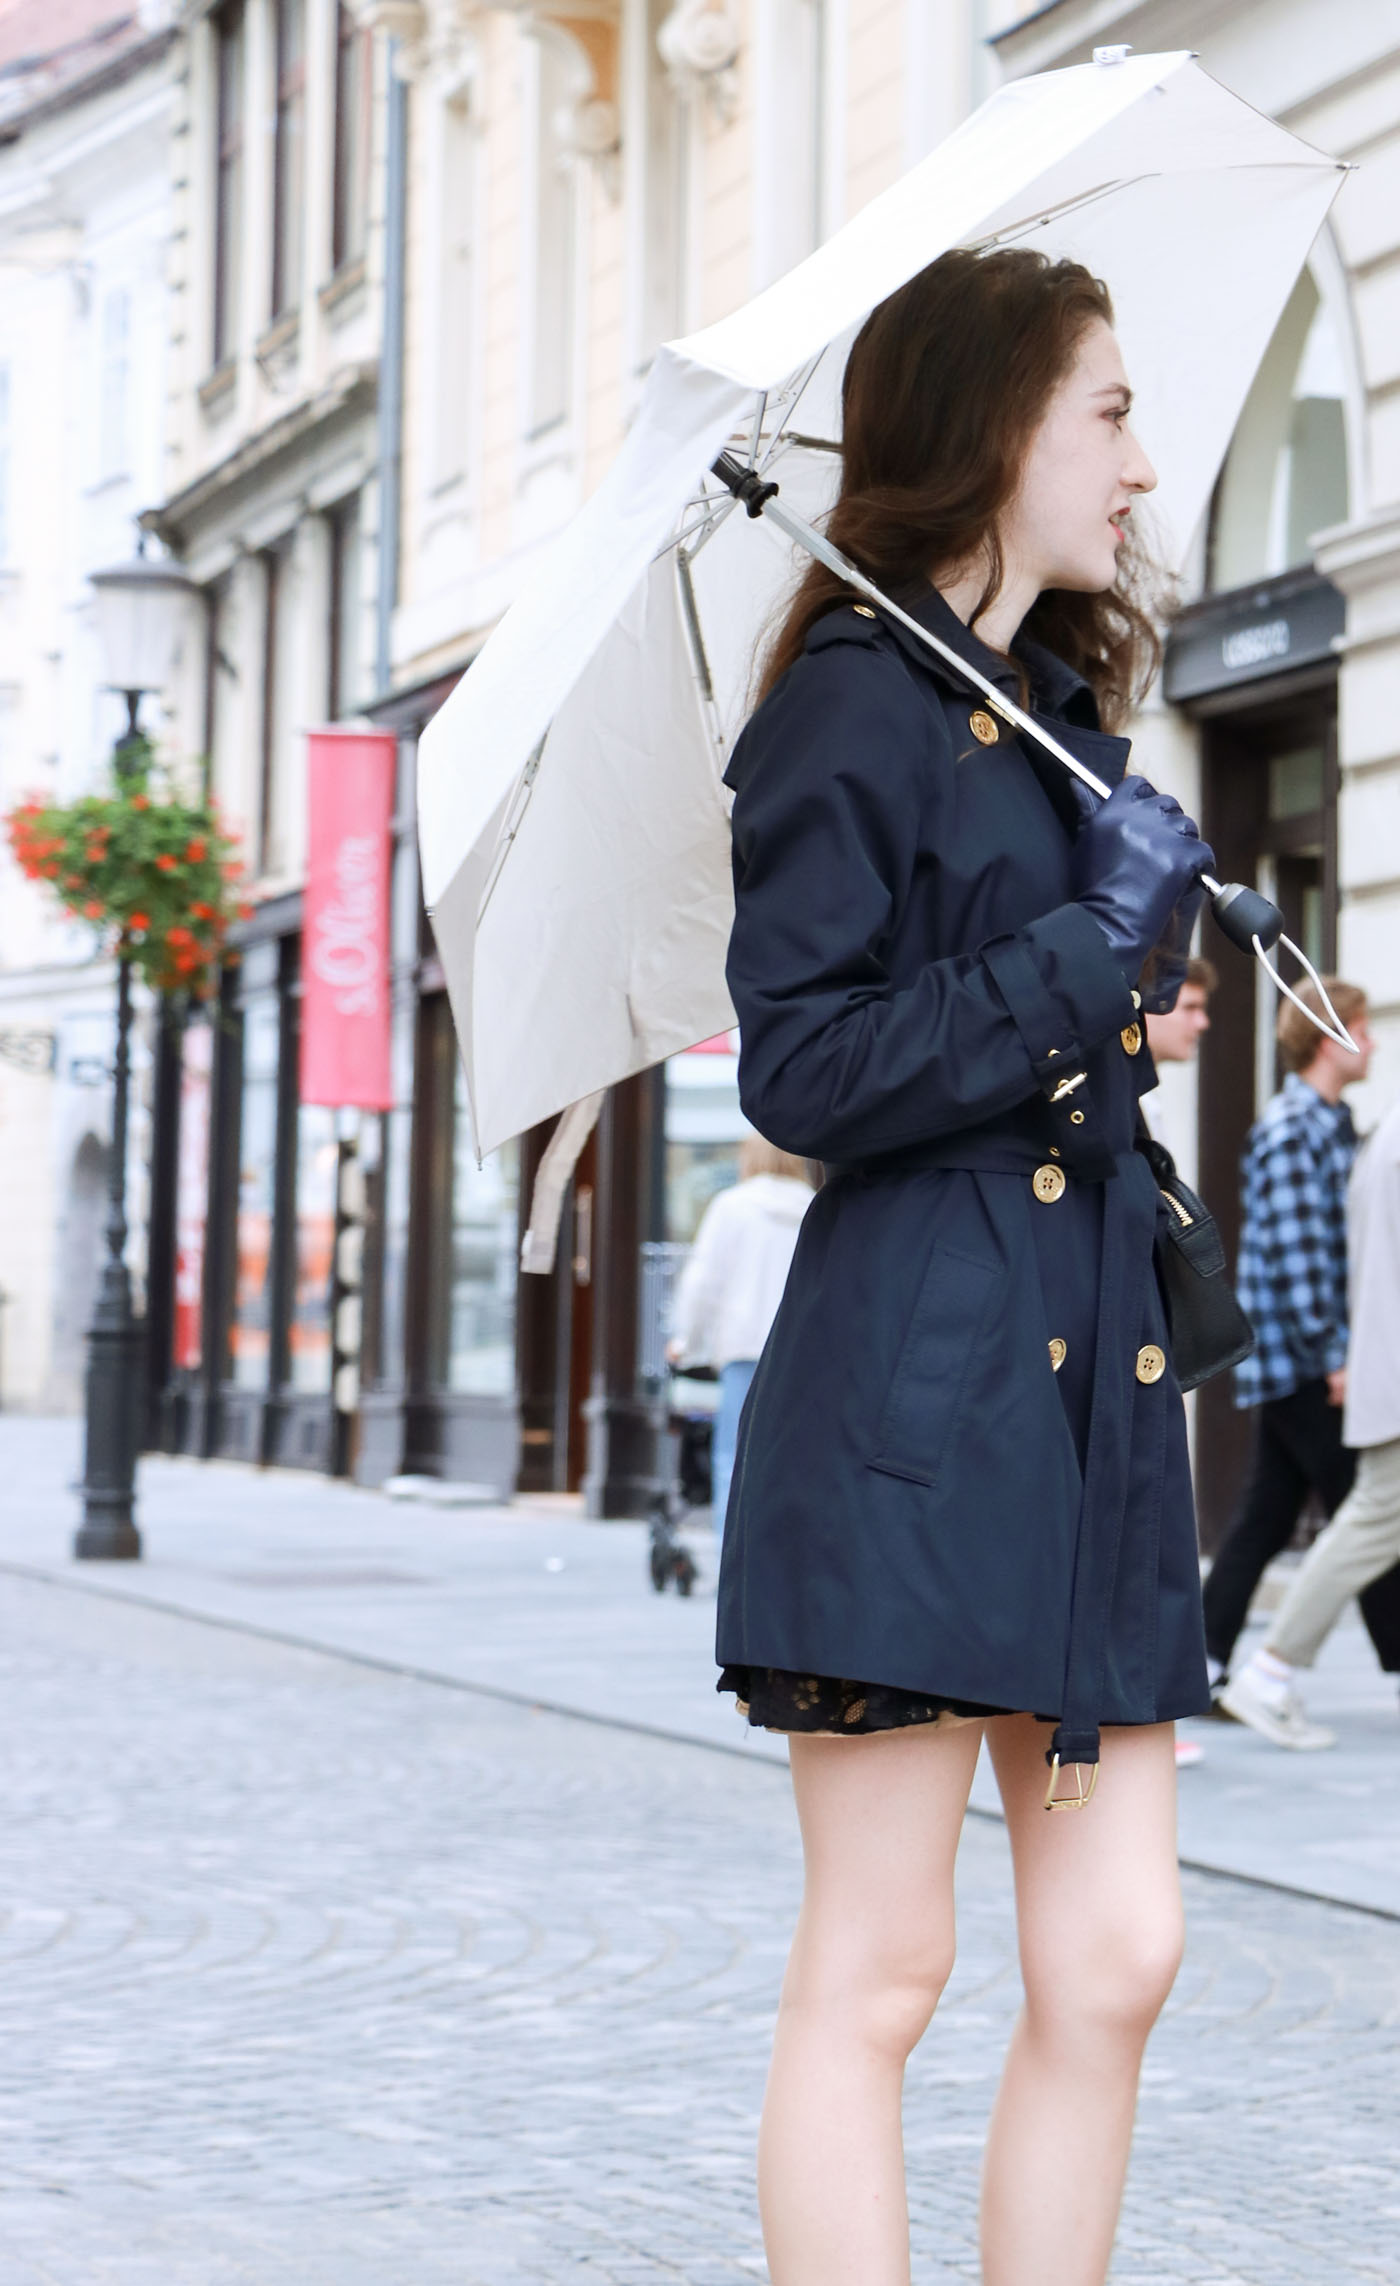 Fashion Blogger Veronika Lipar of Brunette from Wall Street dressed in blue trench coat and ankle boots on a rainy day